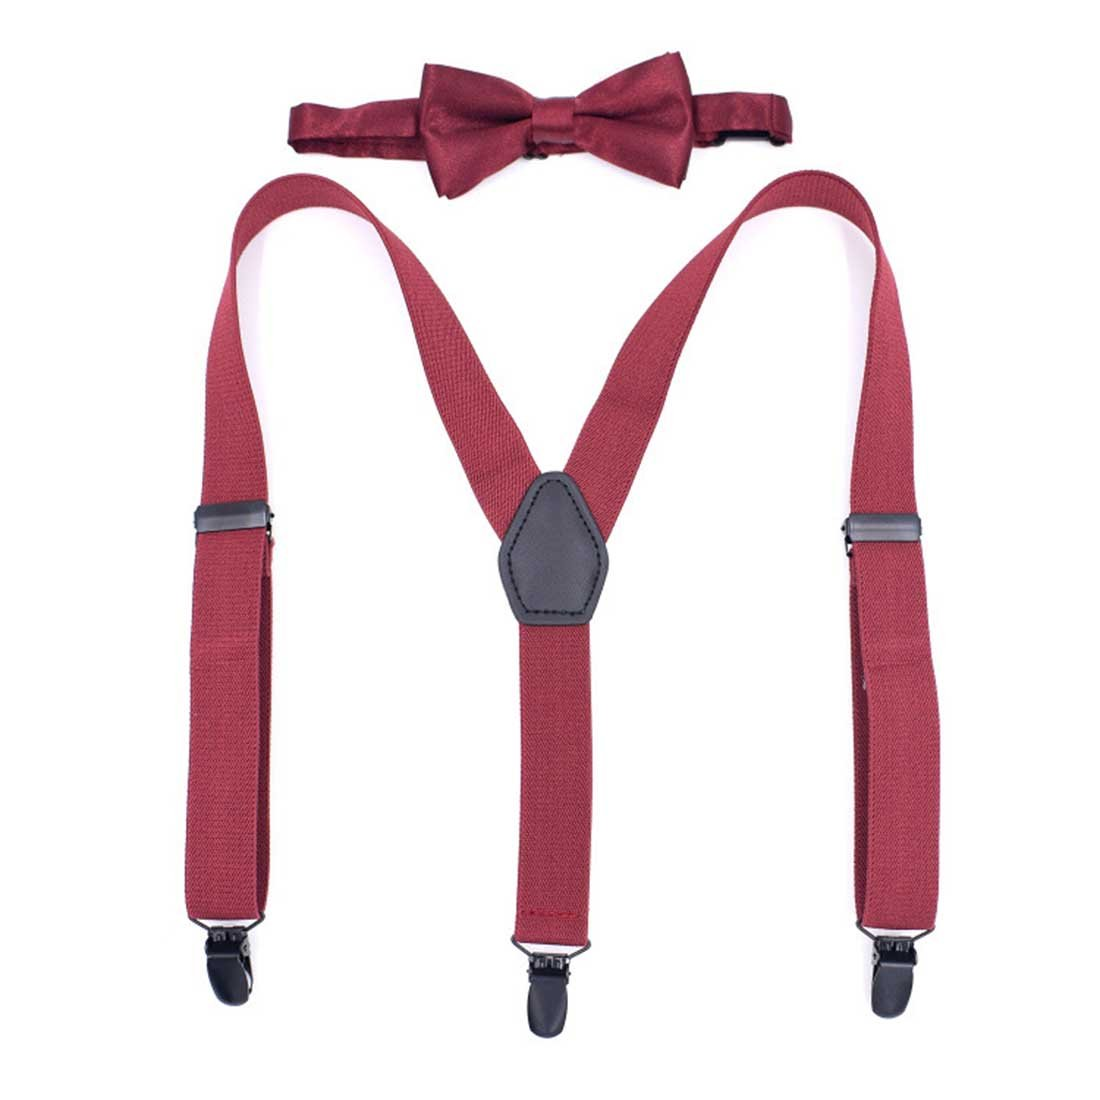 Romanlin Bow Tie and Suspenders Set for Boys Elastic Adjustable Black Clips for Wedding Suspenders Outfit (Burgandy)